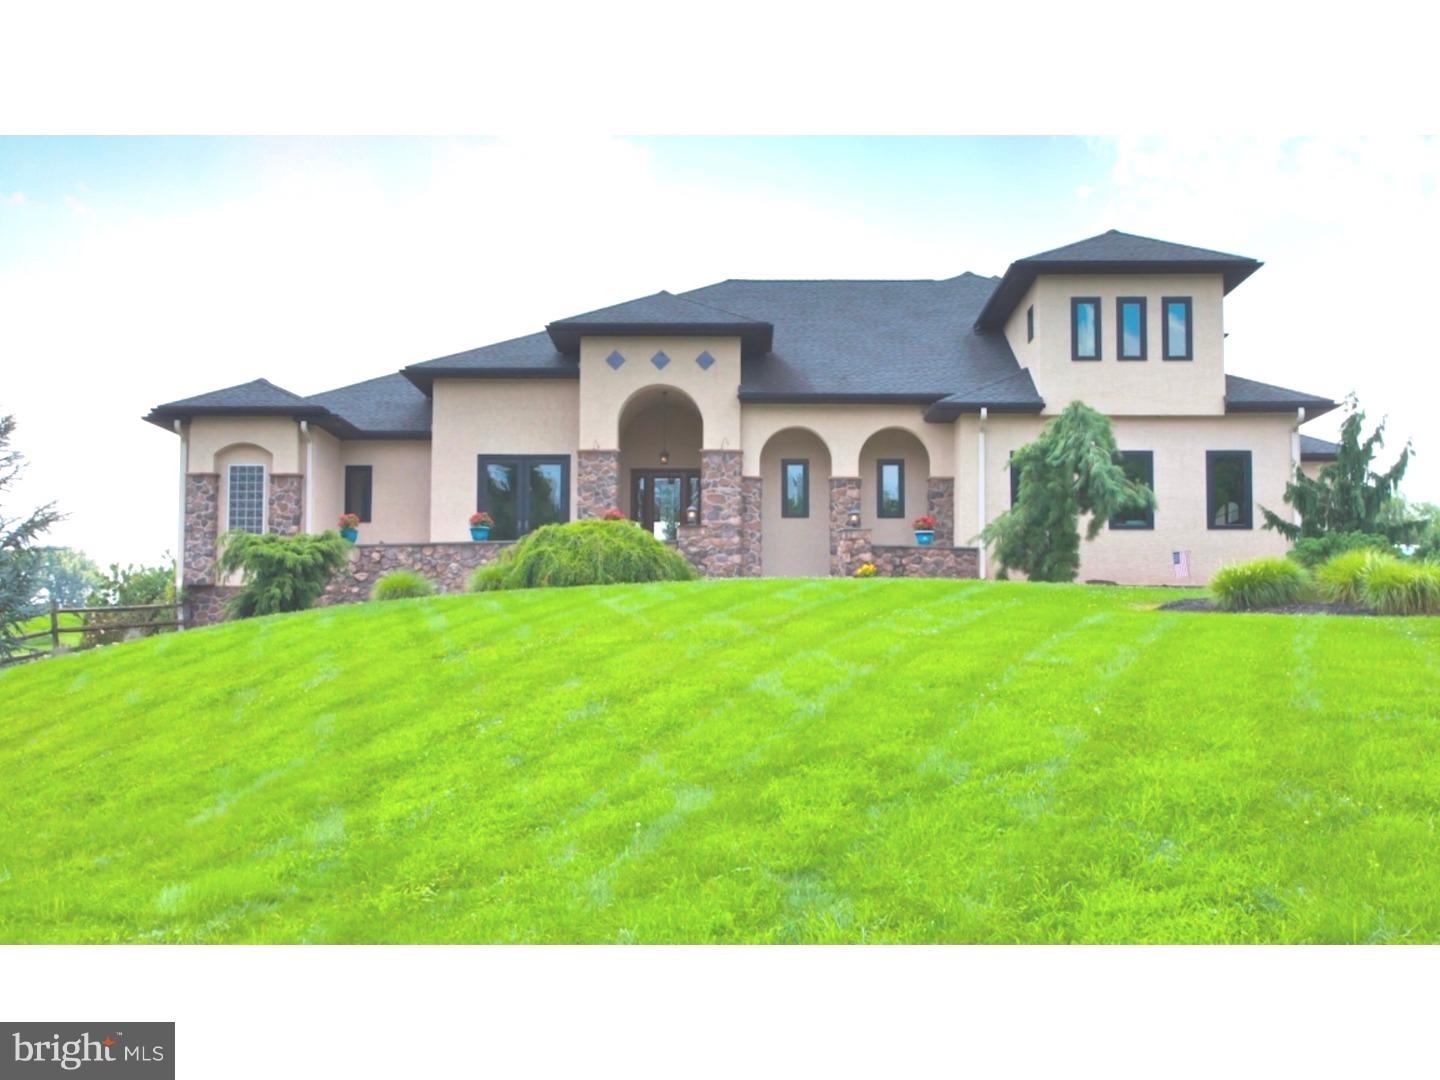 189 W LINFIELD TRAPPE ROAD, ROYERSFORD, PA 19468